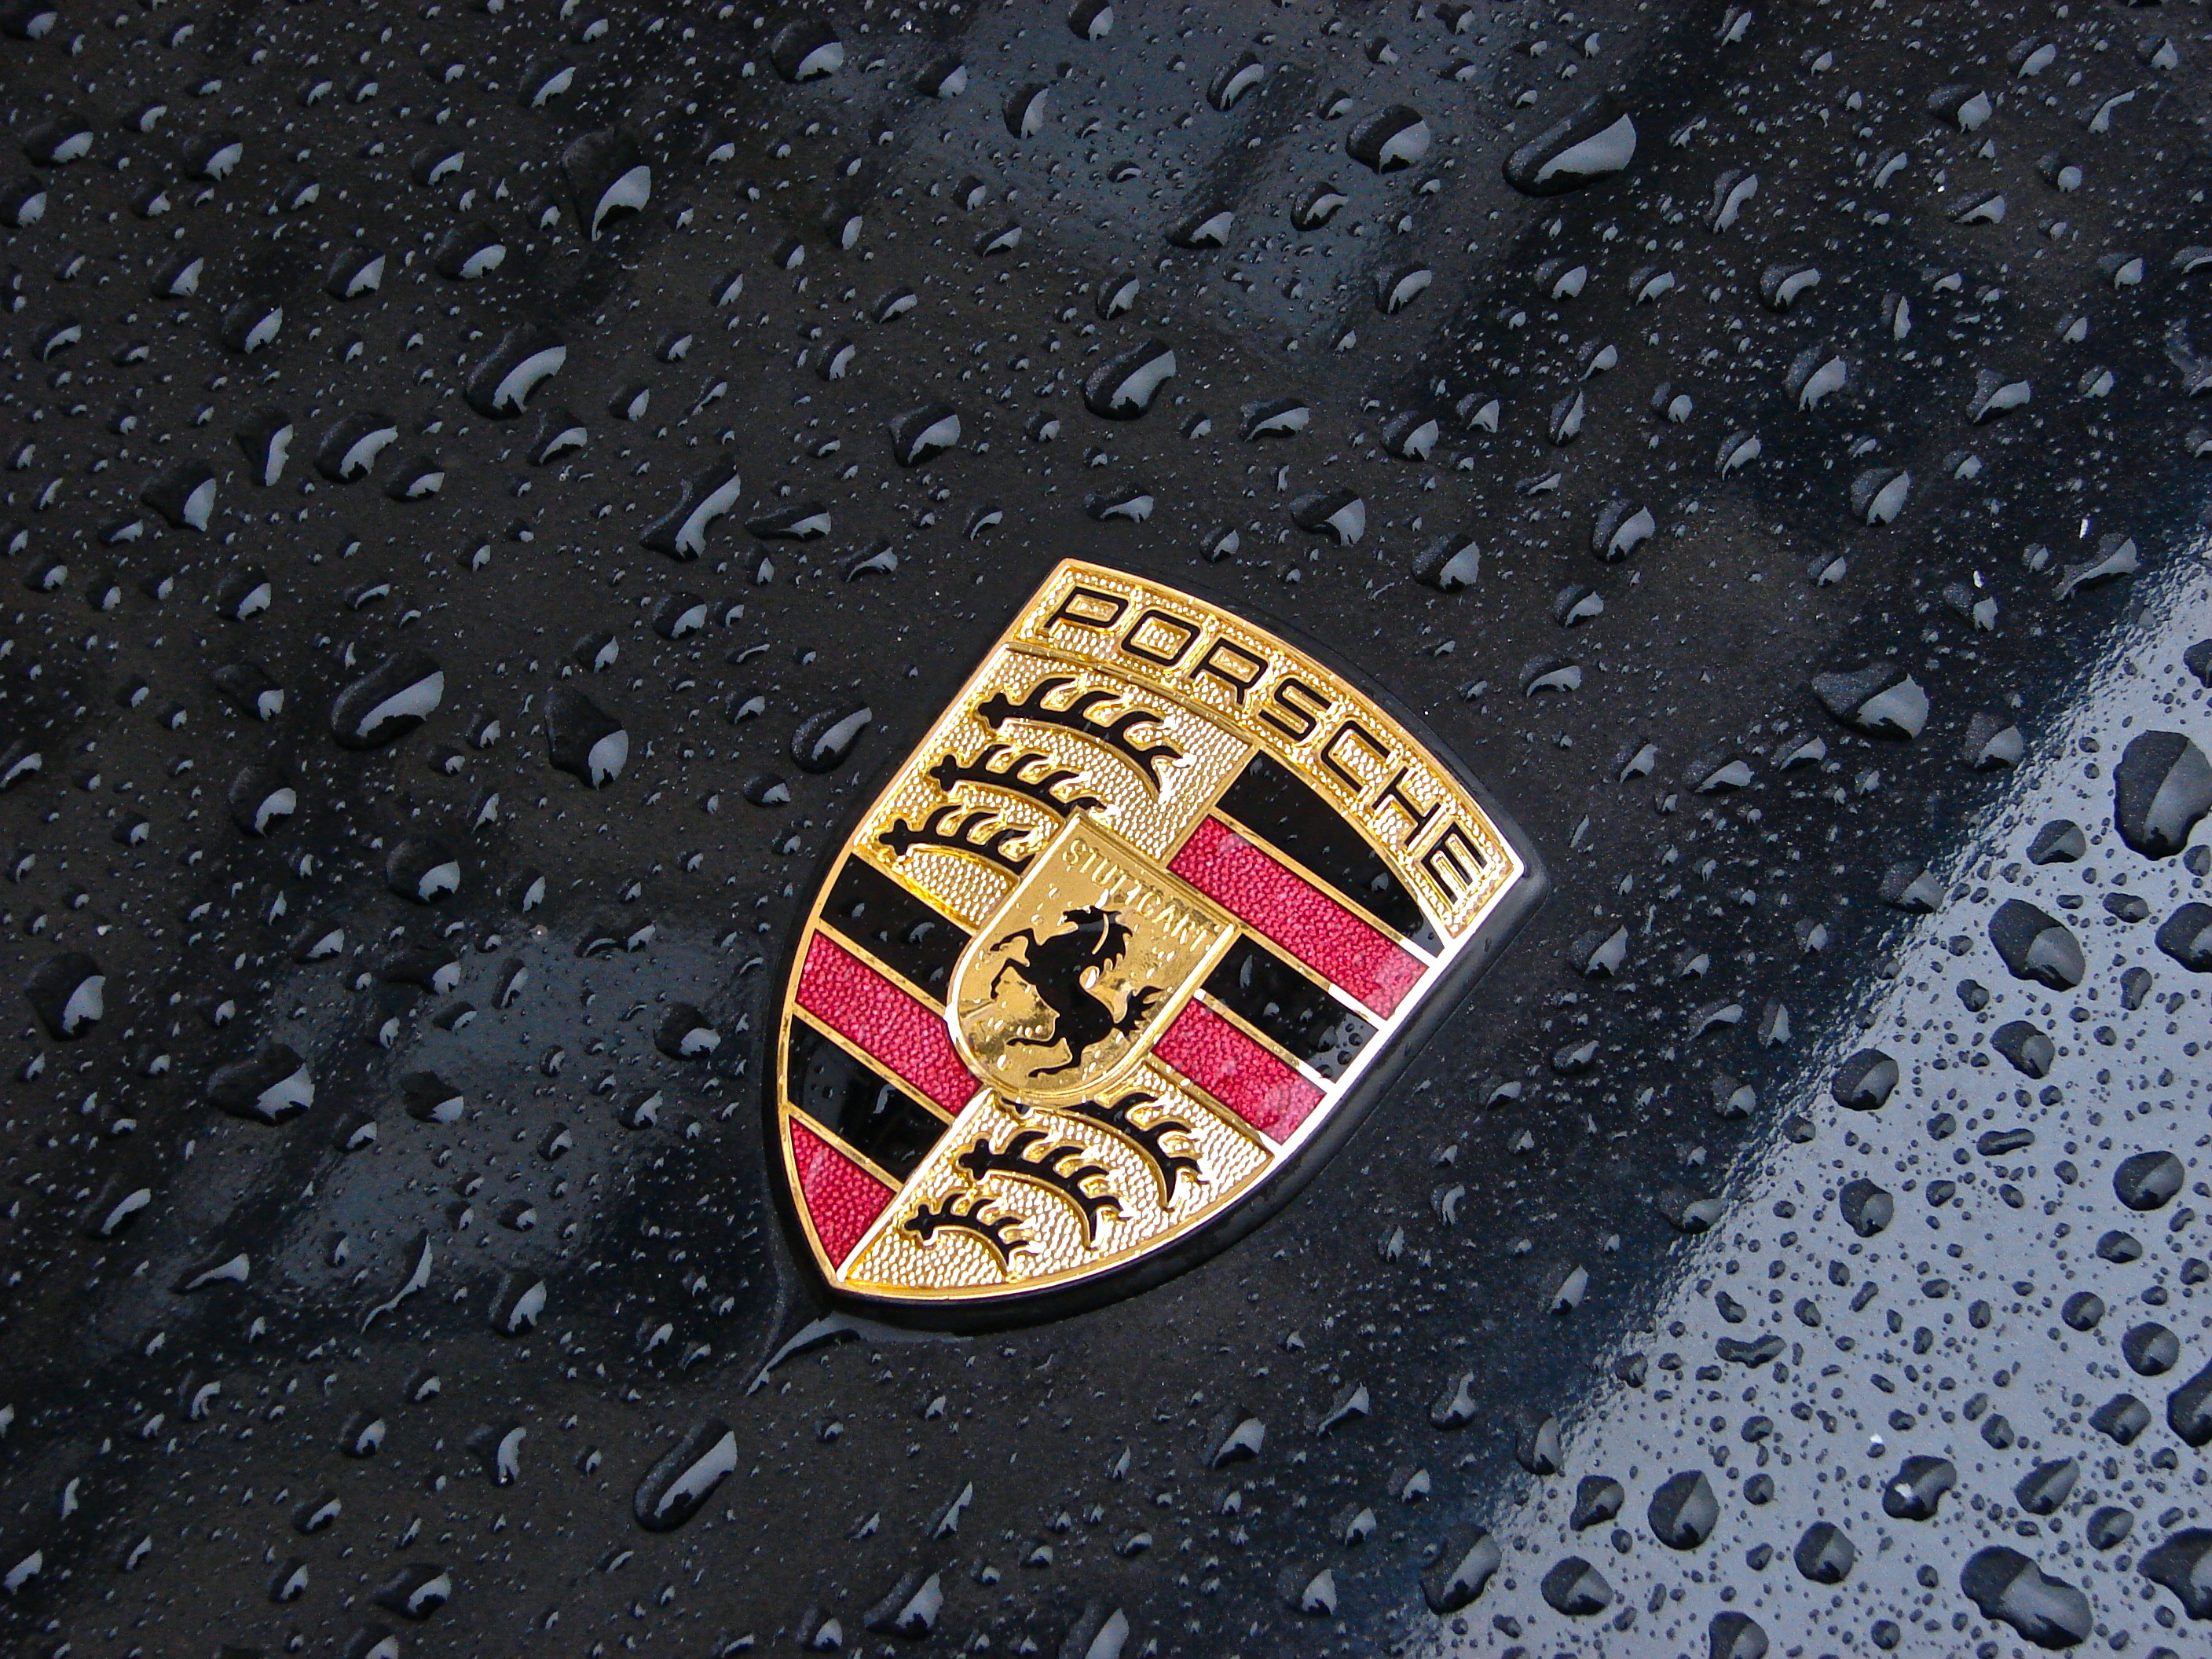 File:Porsche 911 Turbo (4208592954).jpg - Wikimedia Commons